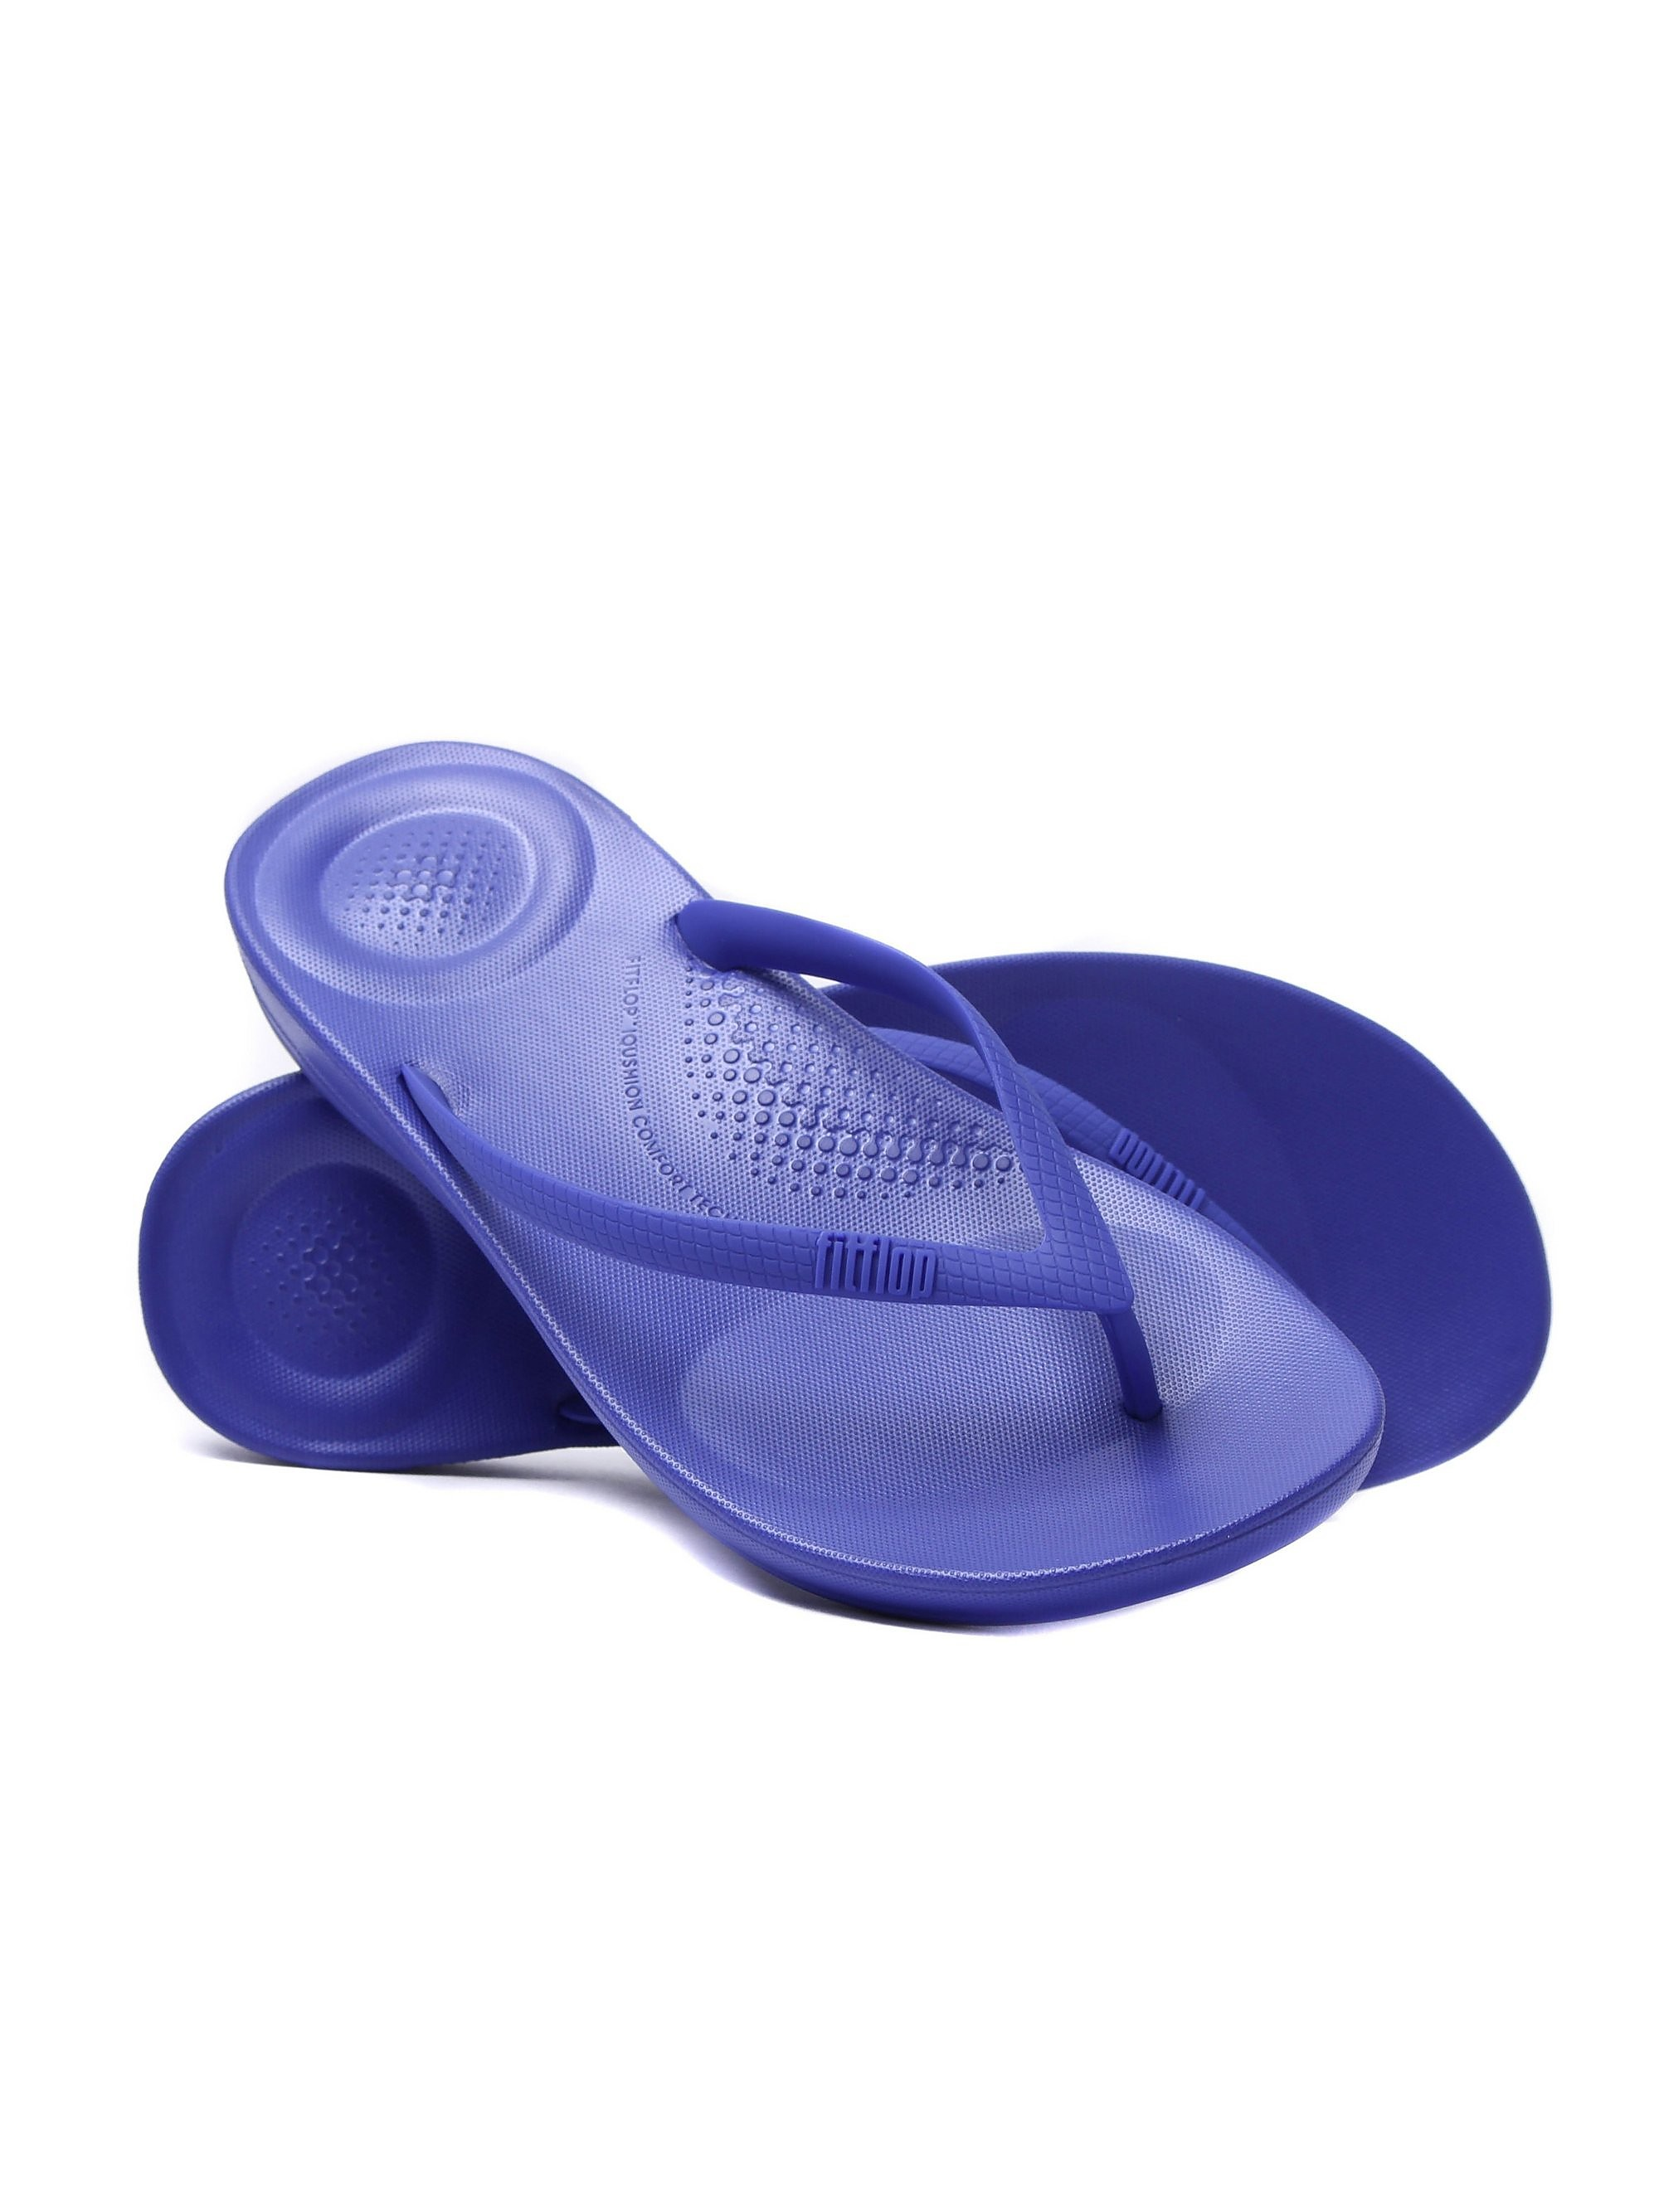 FitFlop Women's iQUSHION Ergonomic Flip Flops - Royal Blue